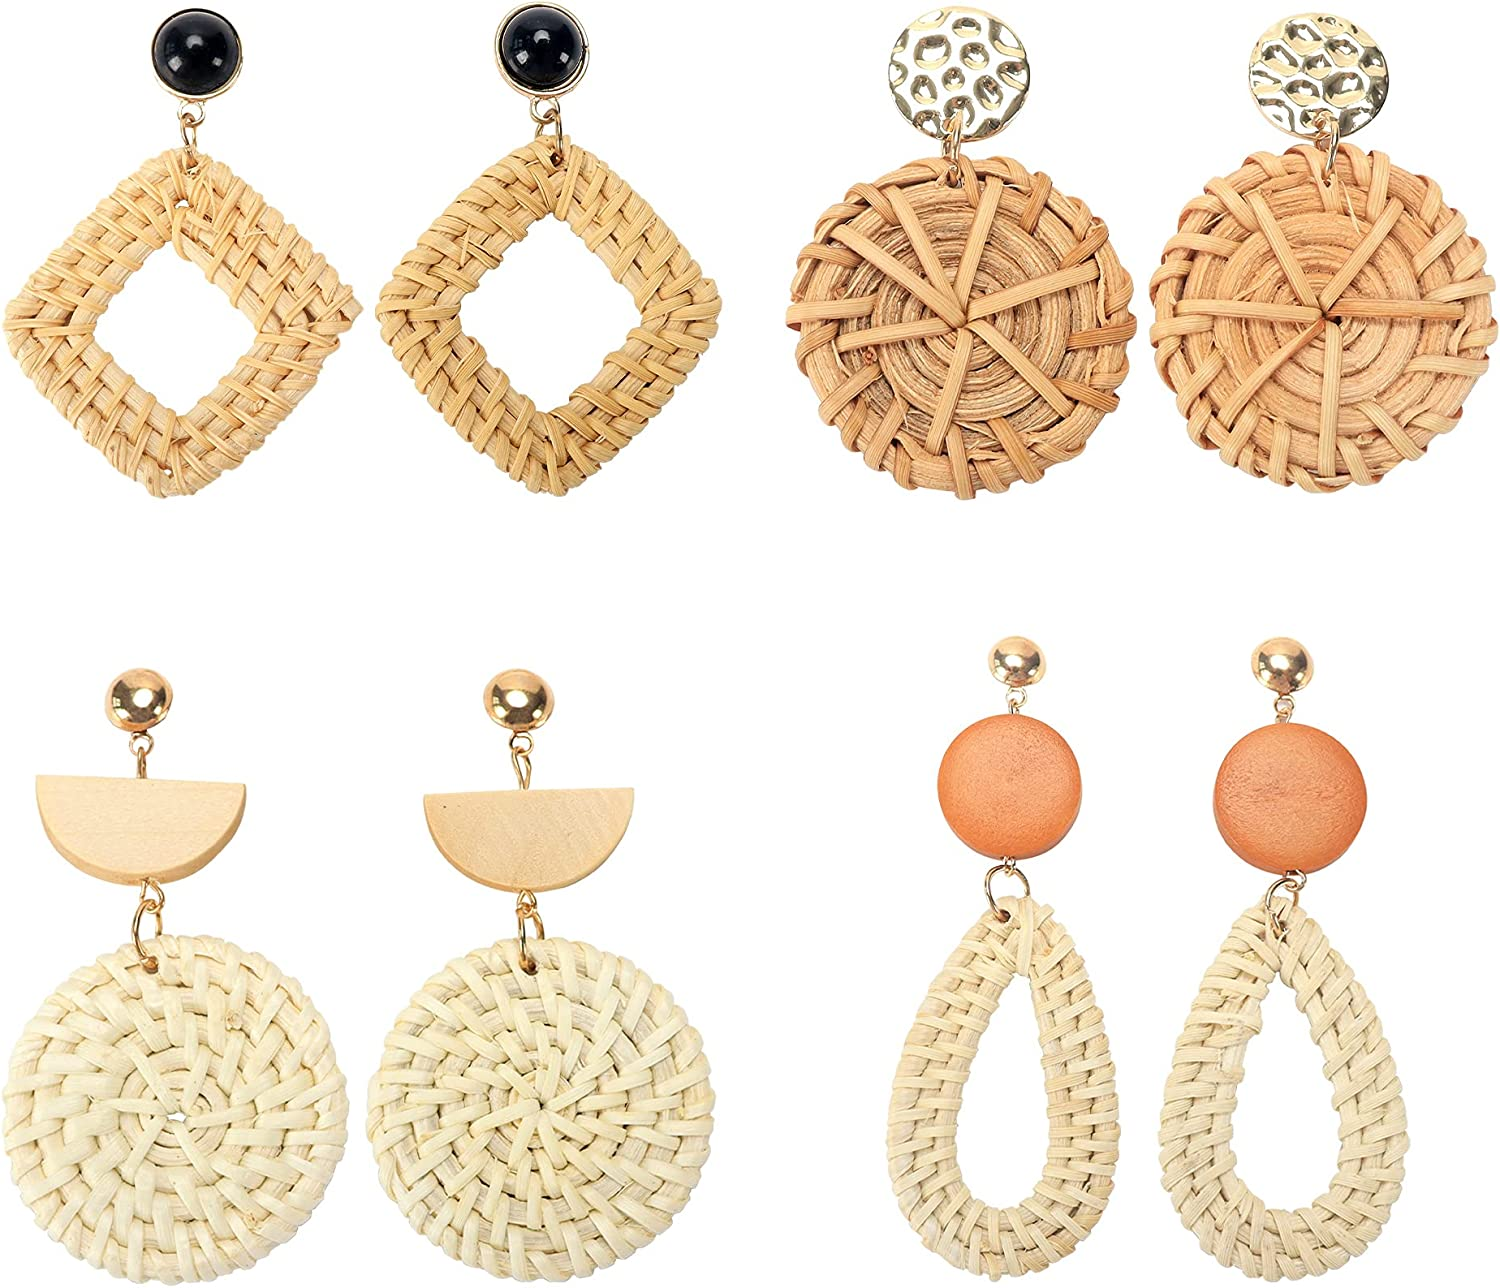 Rattan Knitted Earrings Set 4 Ac Geometric Pendant Recommendation Pair quality assurance